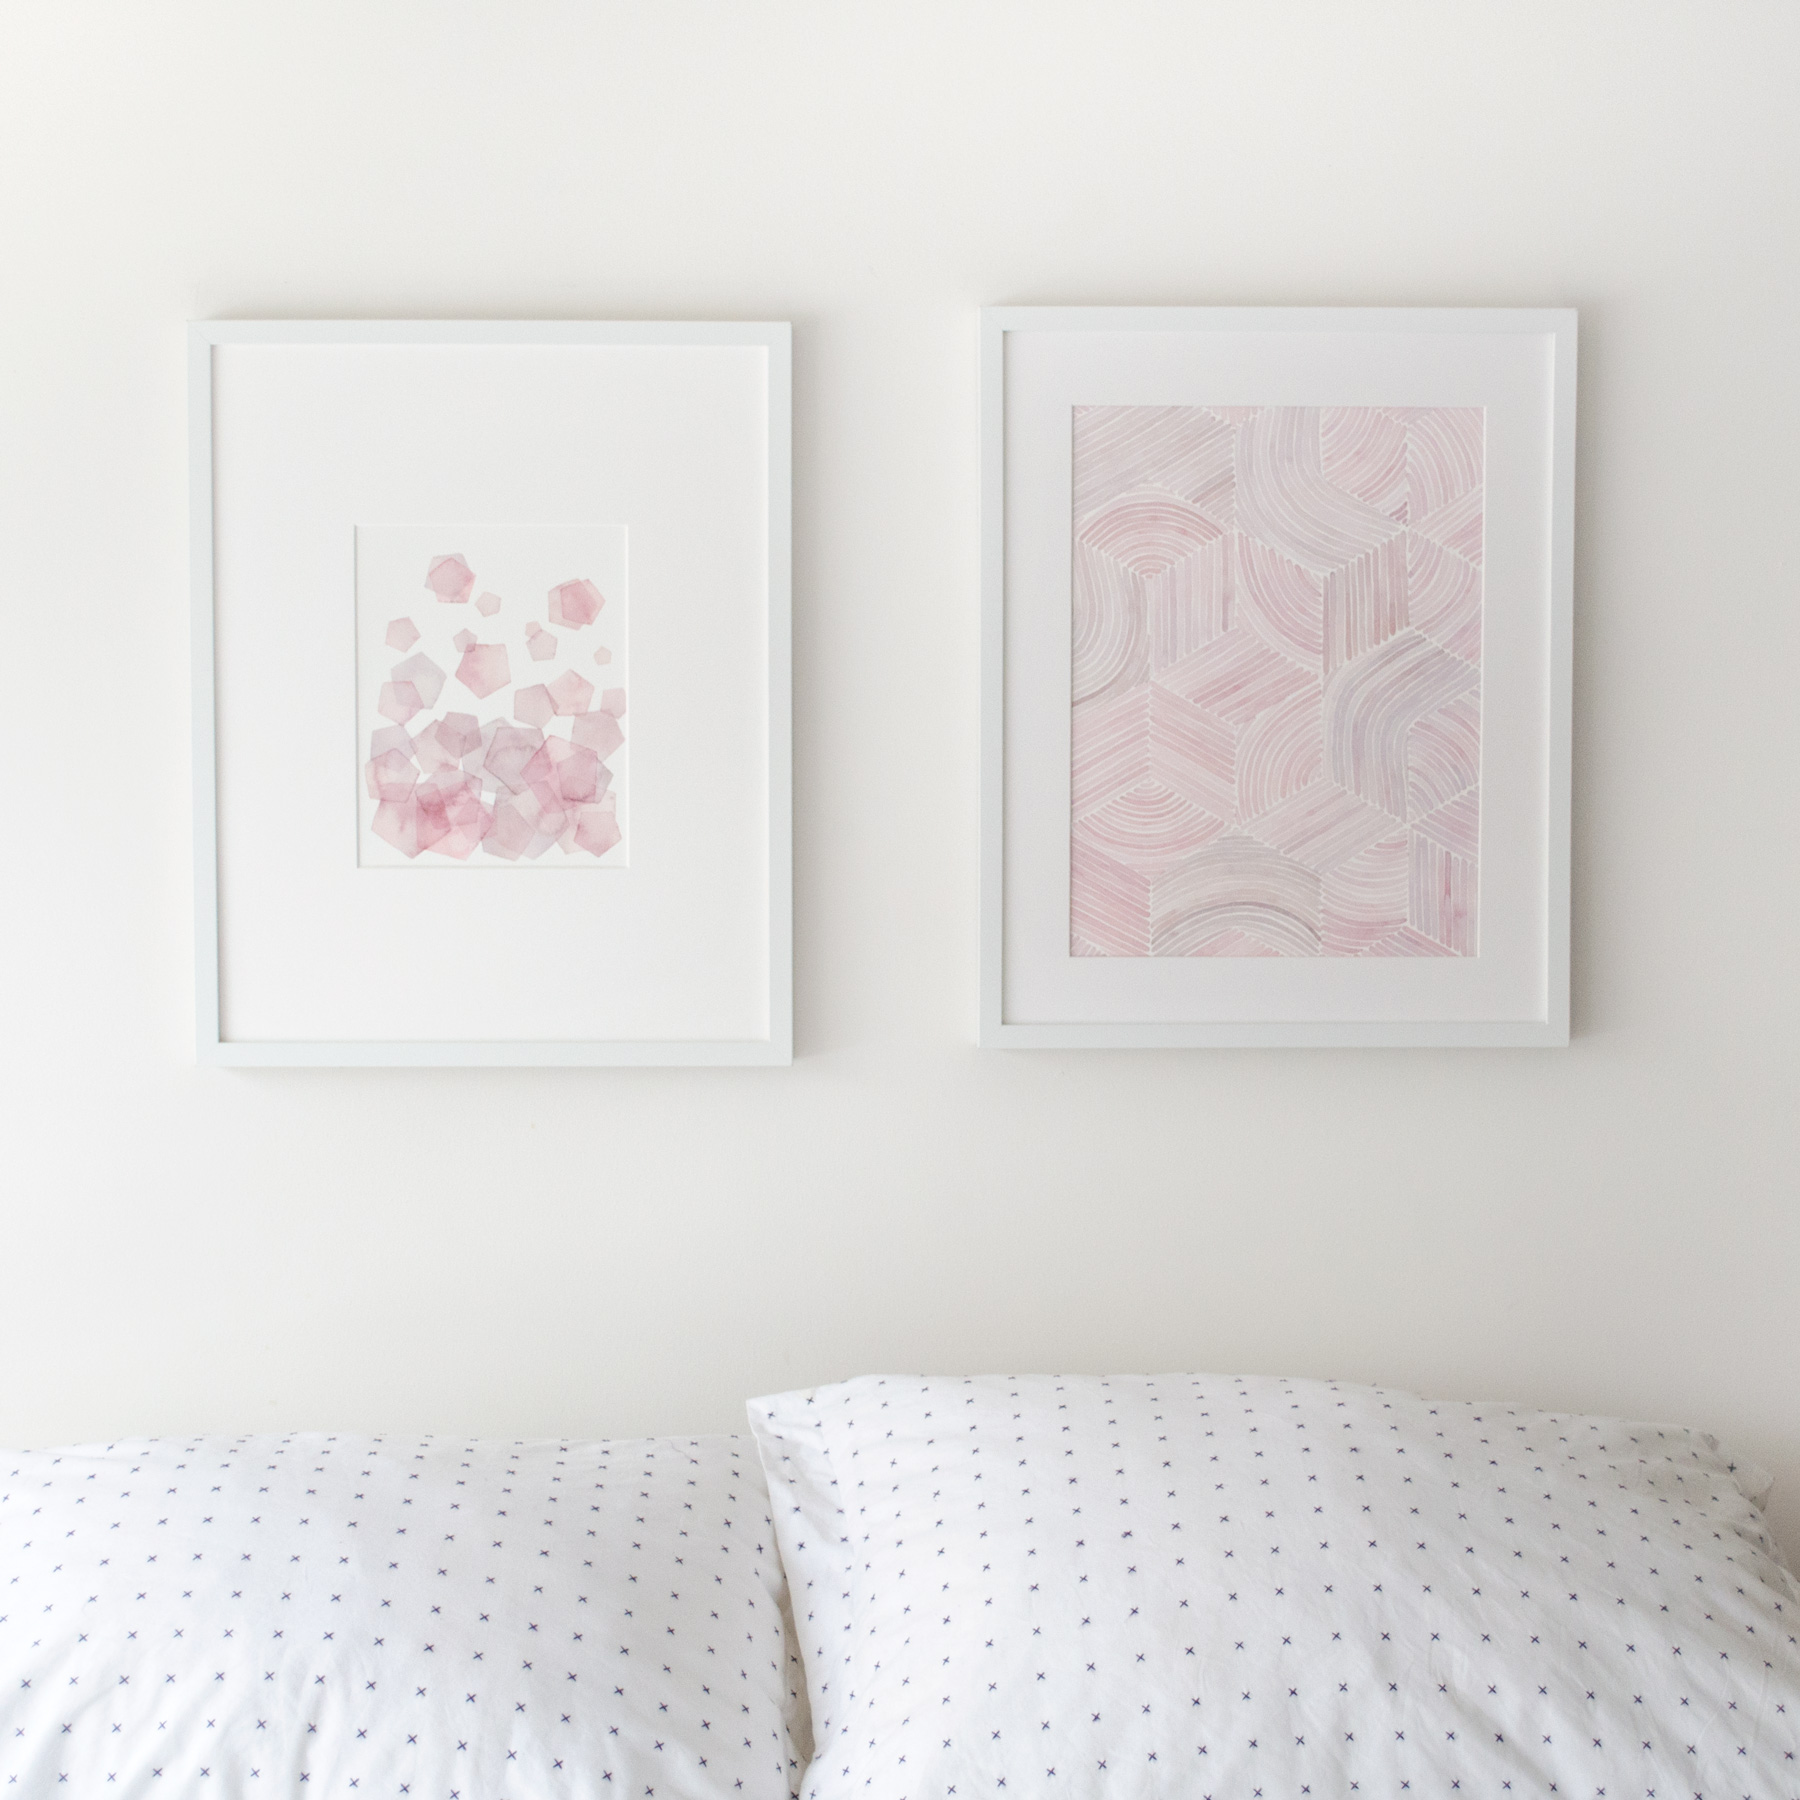 FLOAT IN PINK / GATHERED AND ARRANGED 1 - Jen Lashek - Watercolour